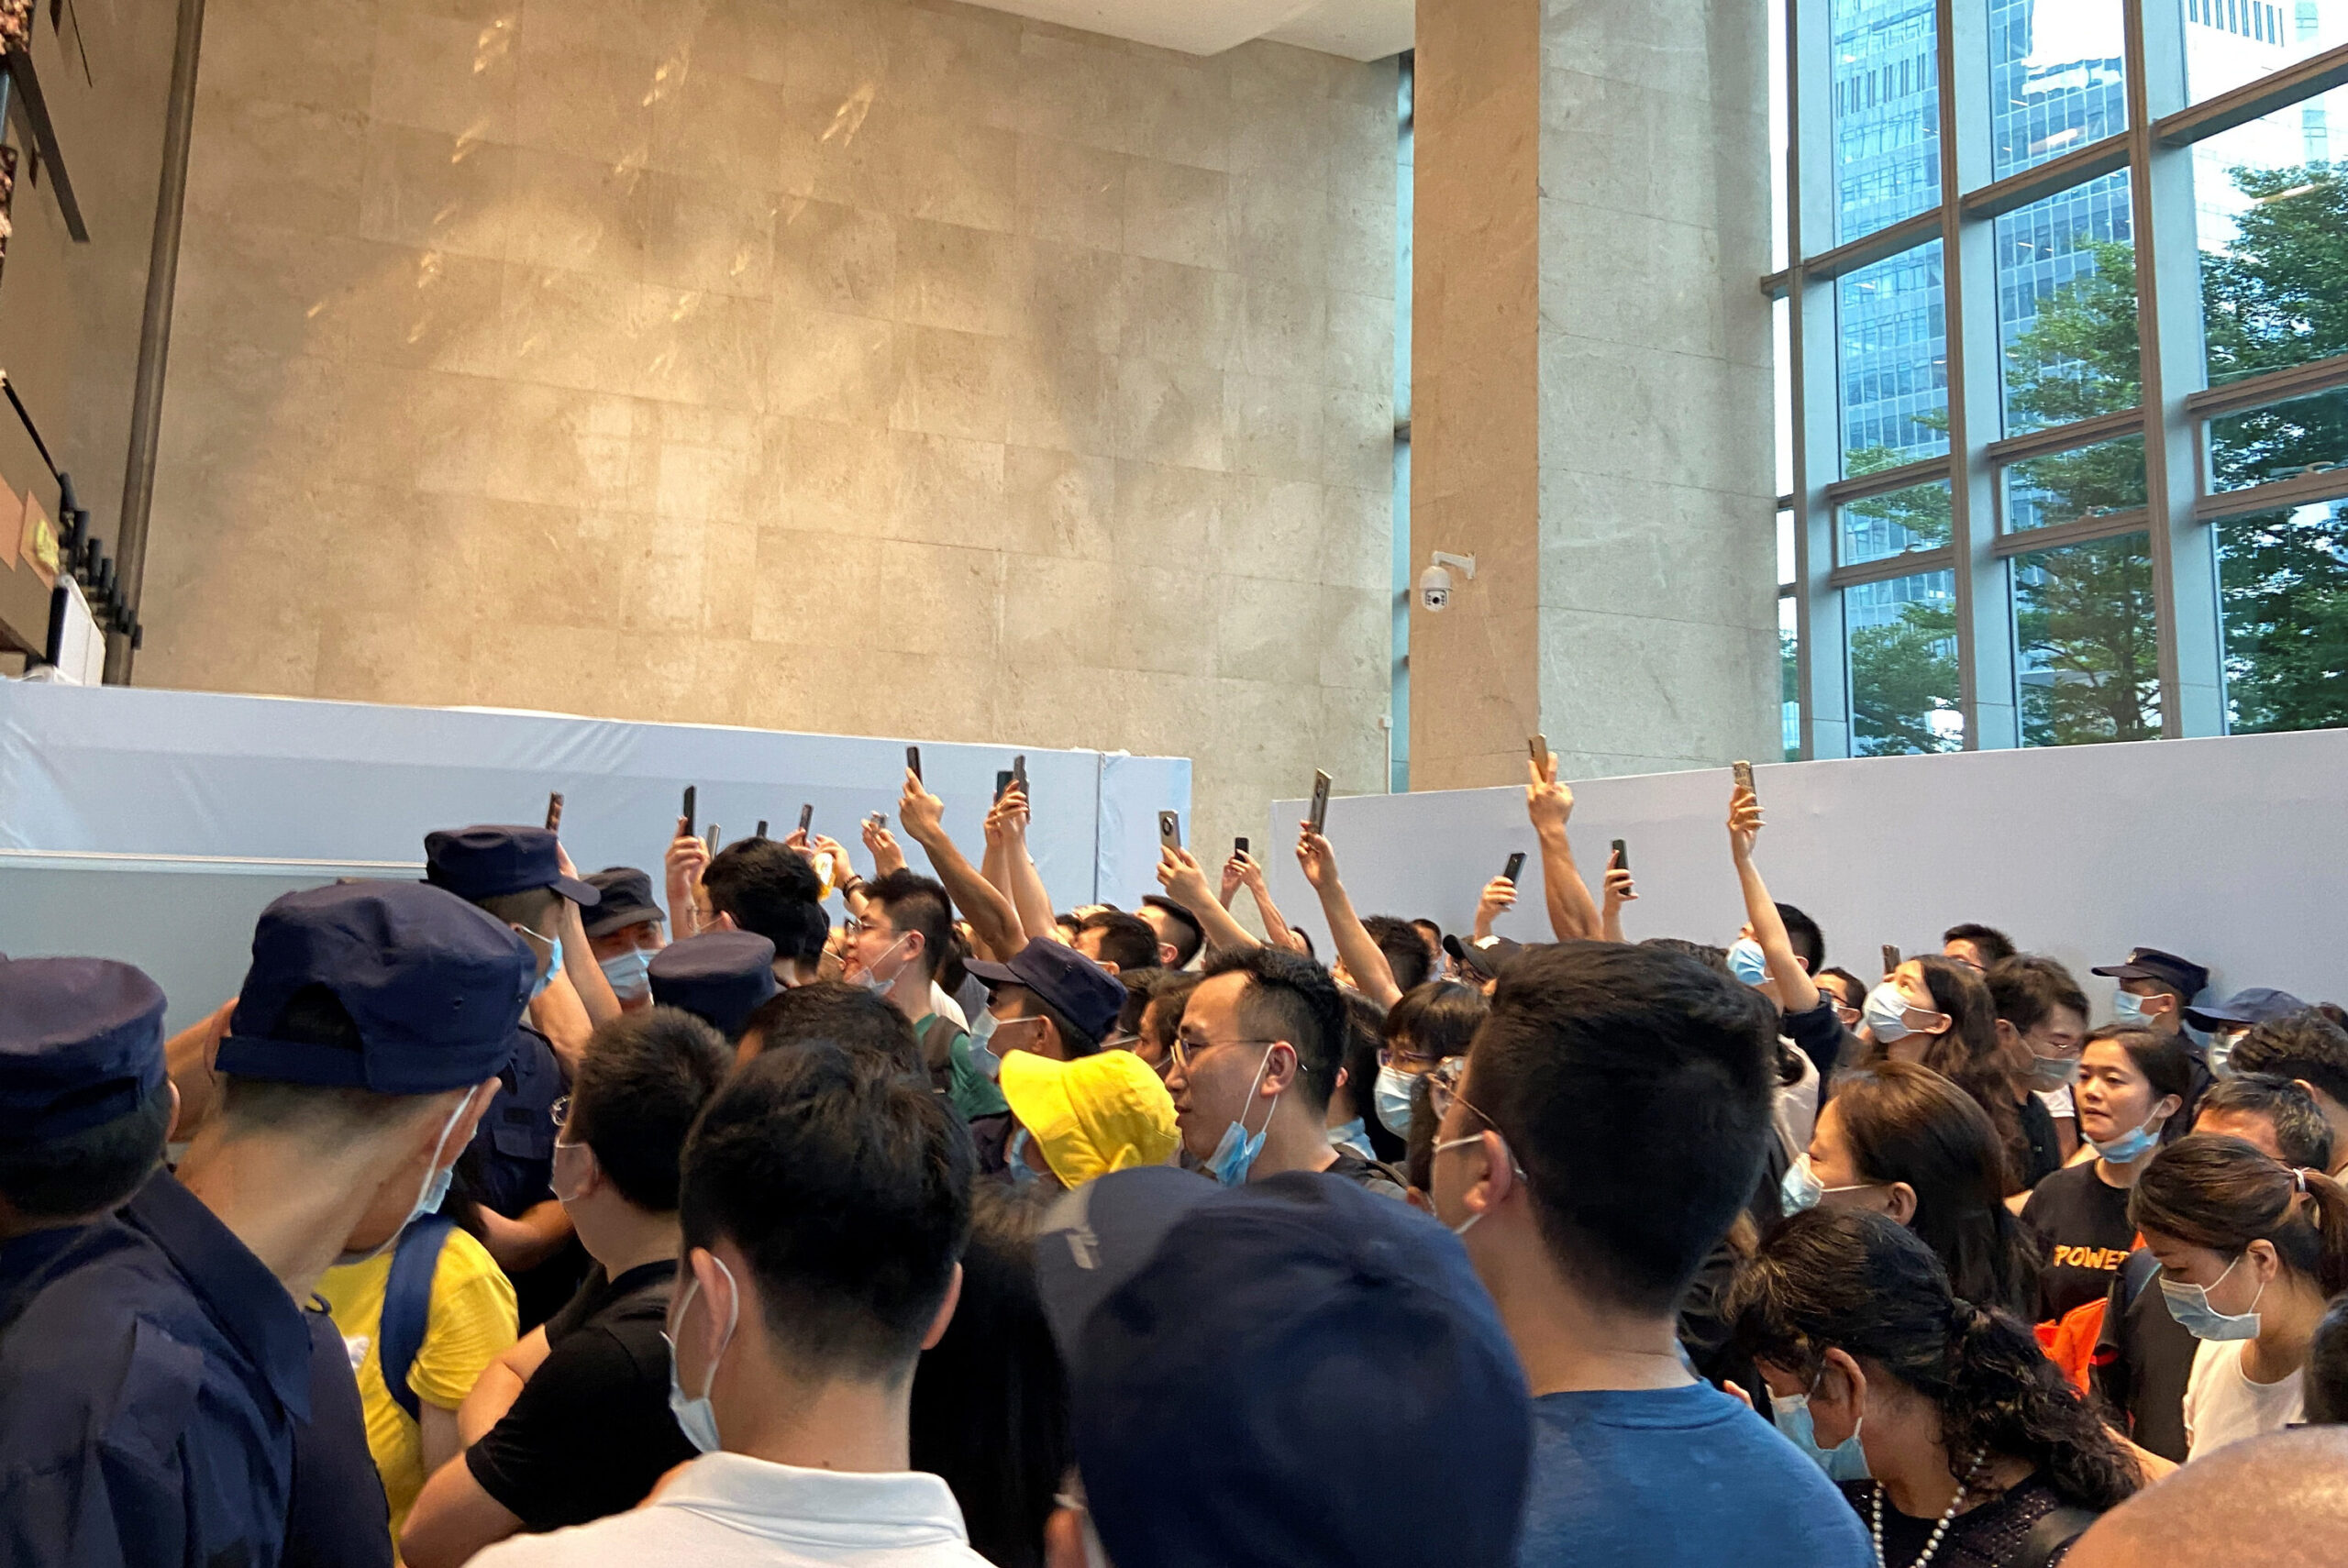 <i>David Kirton/Reuters</i><br/>People gathering to demand repayment of loans and financial products at Evergrande's headquarters in Shenzhen on Monday.